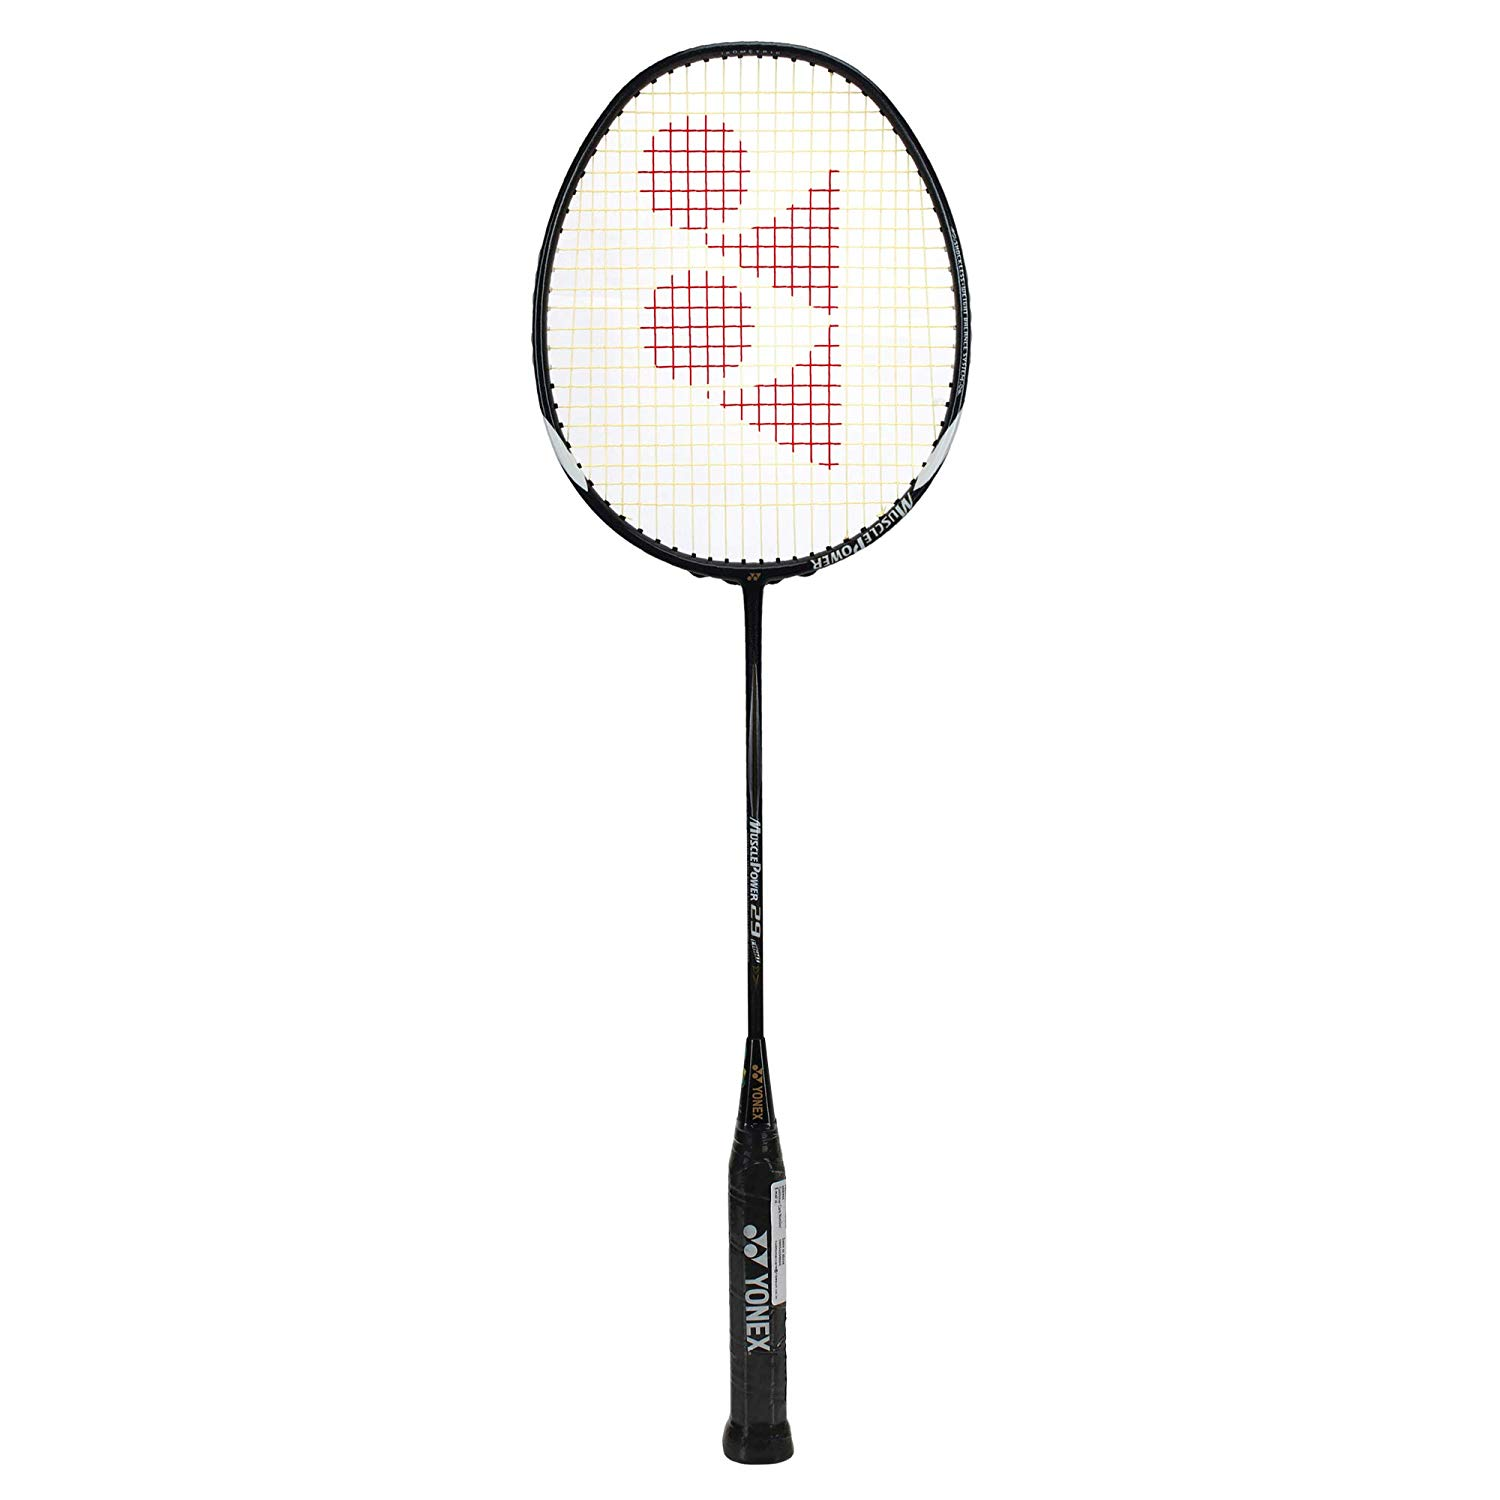 Best Badminton Racket In India 2020 – Review & Buying Guide